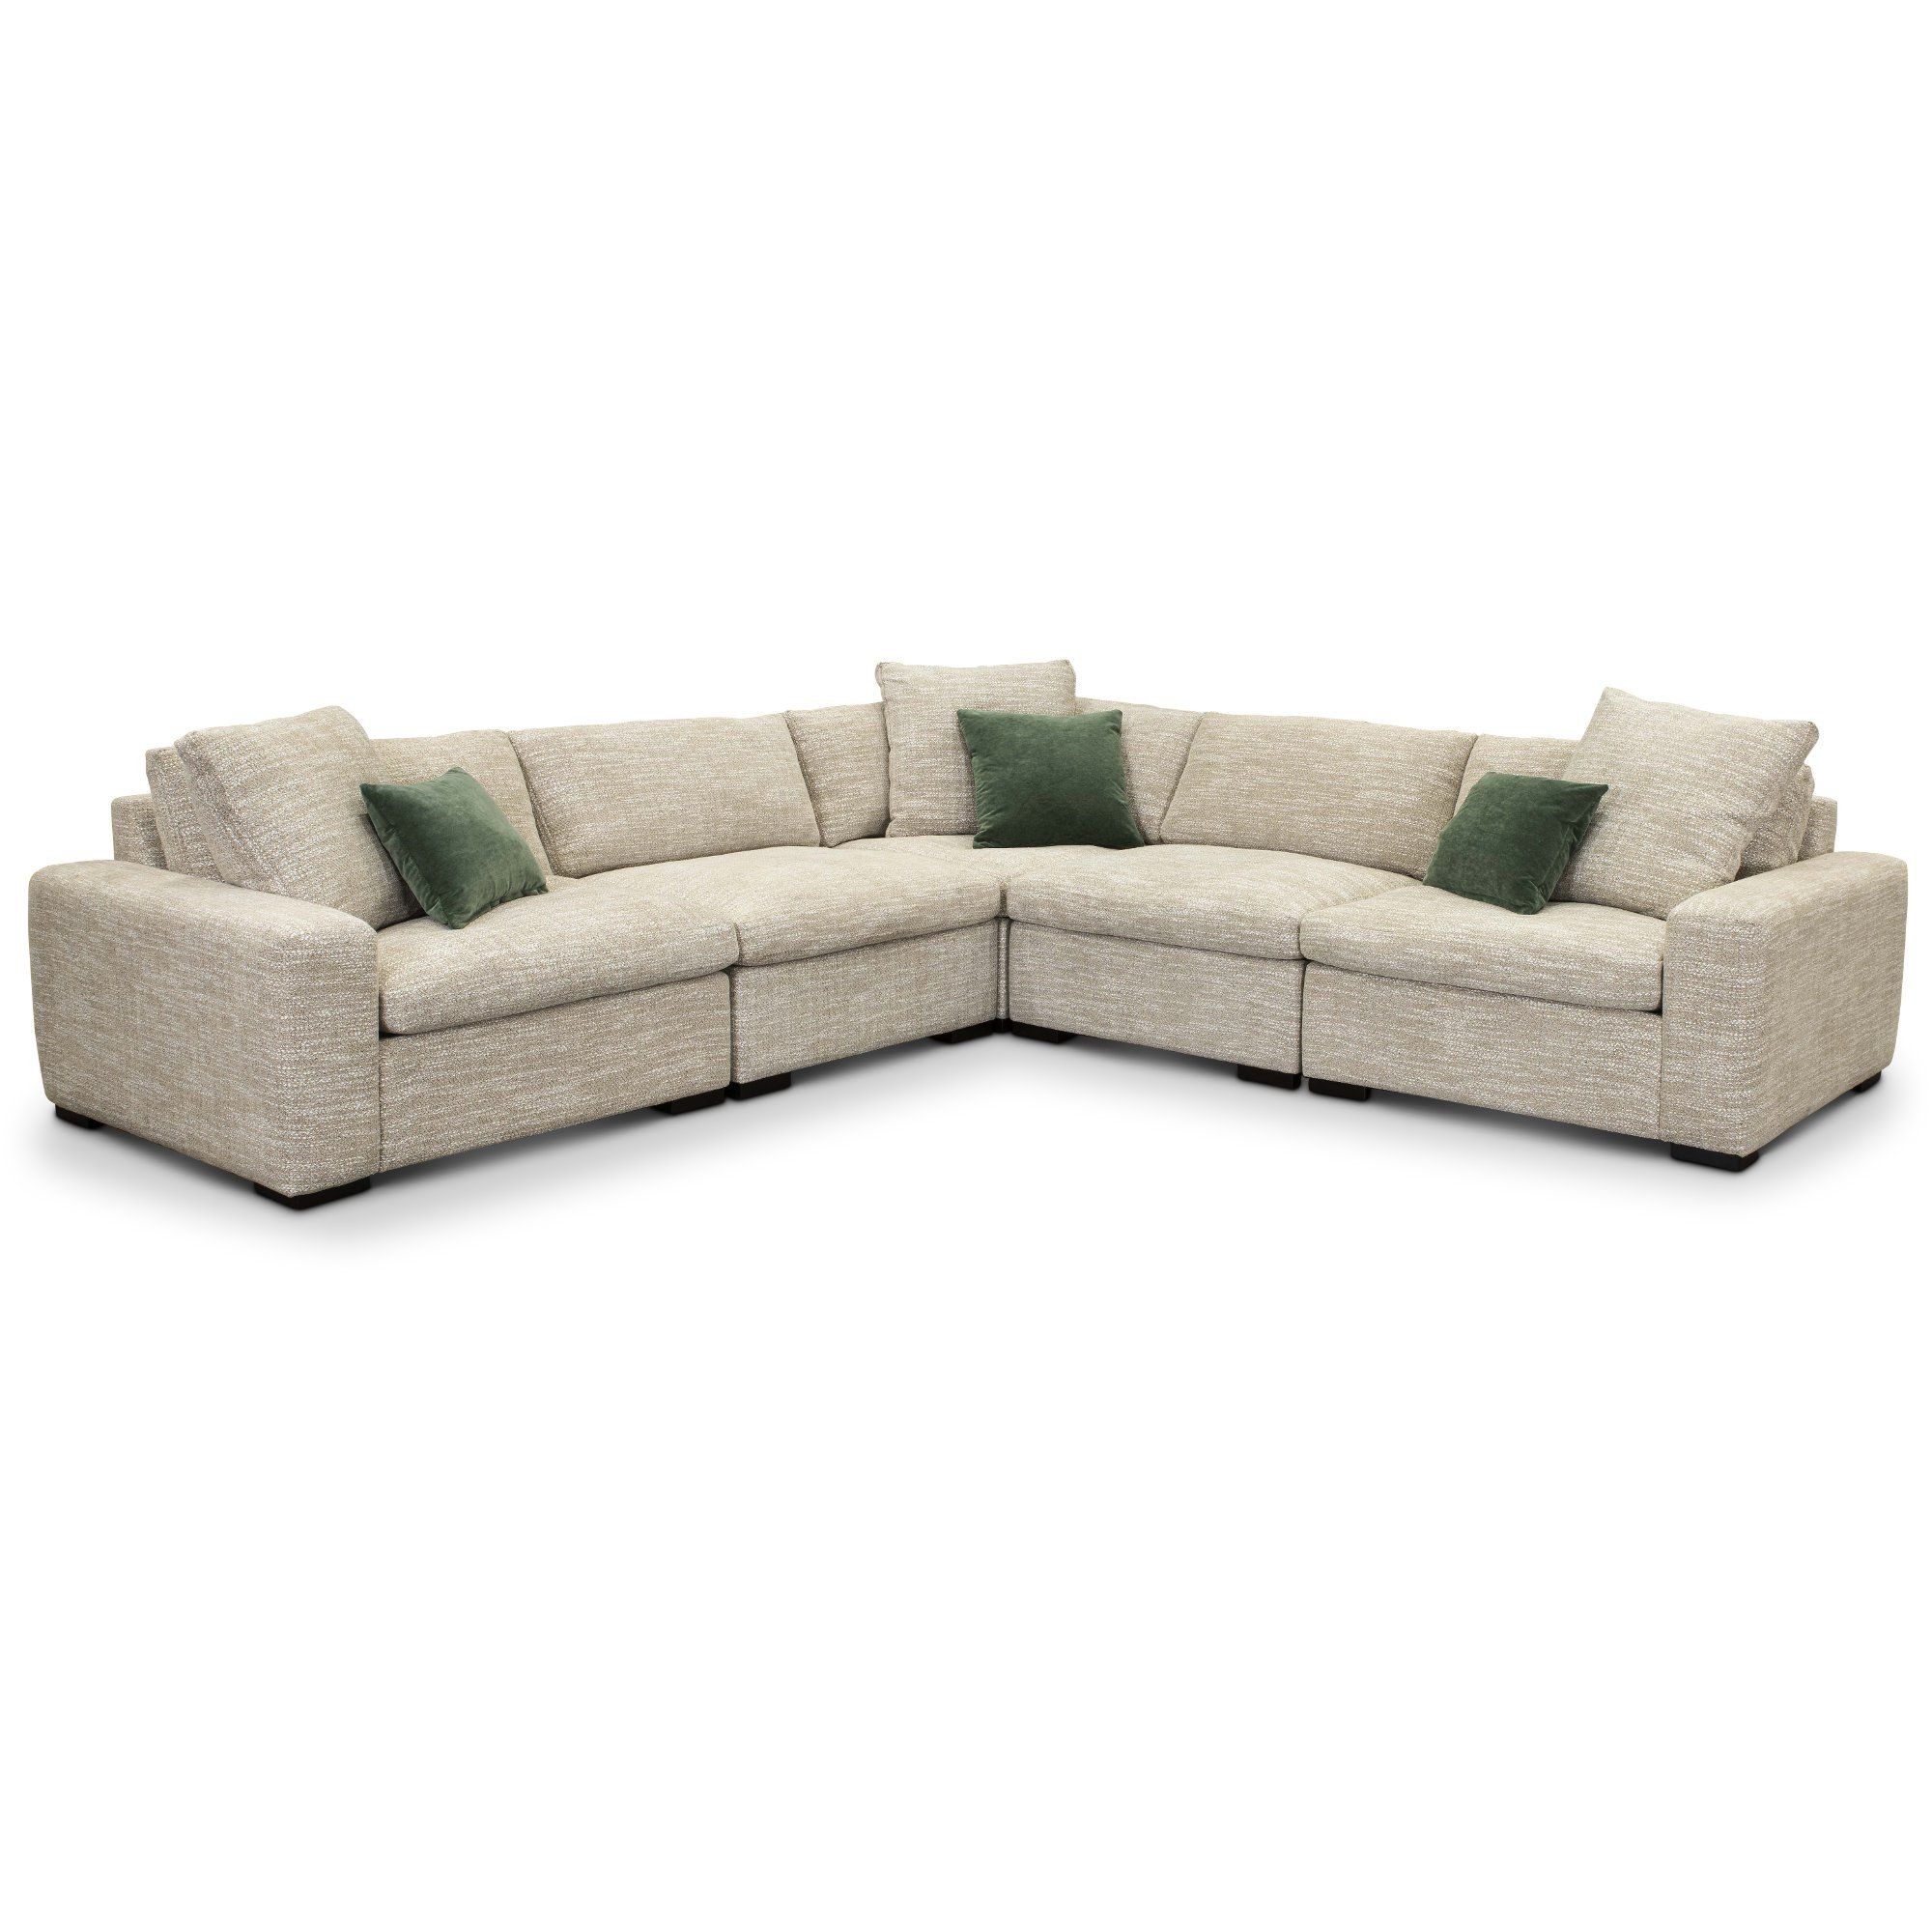 Light Gray 5 Piece Sectional Sofa Naima Sectional Sofa Sofa